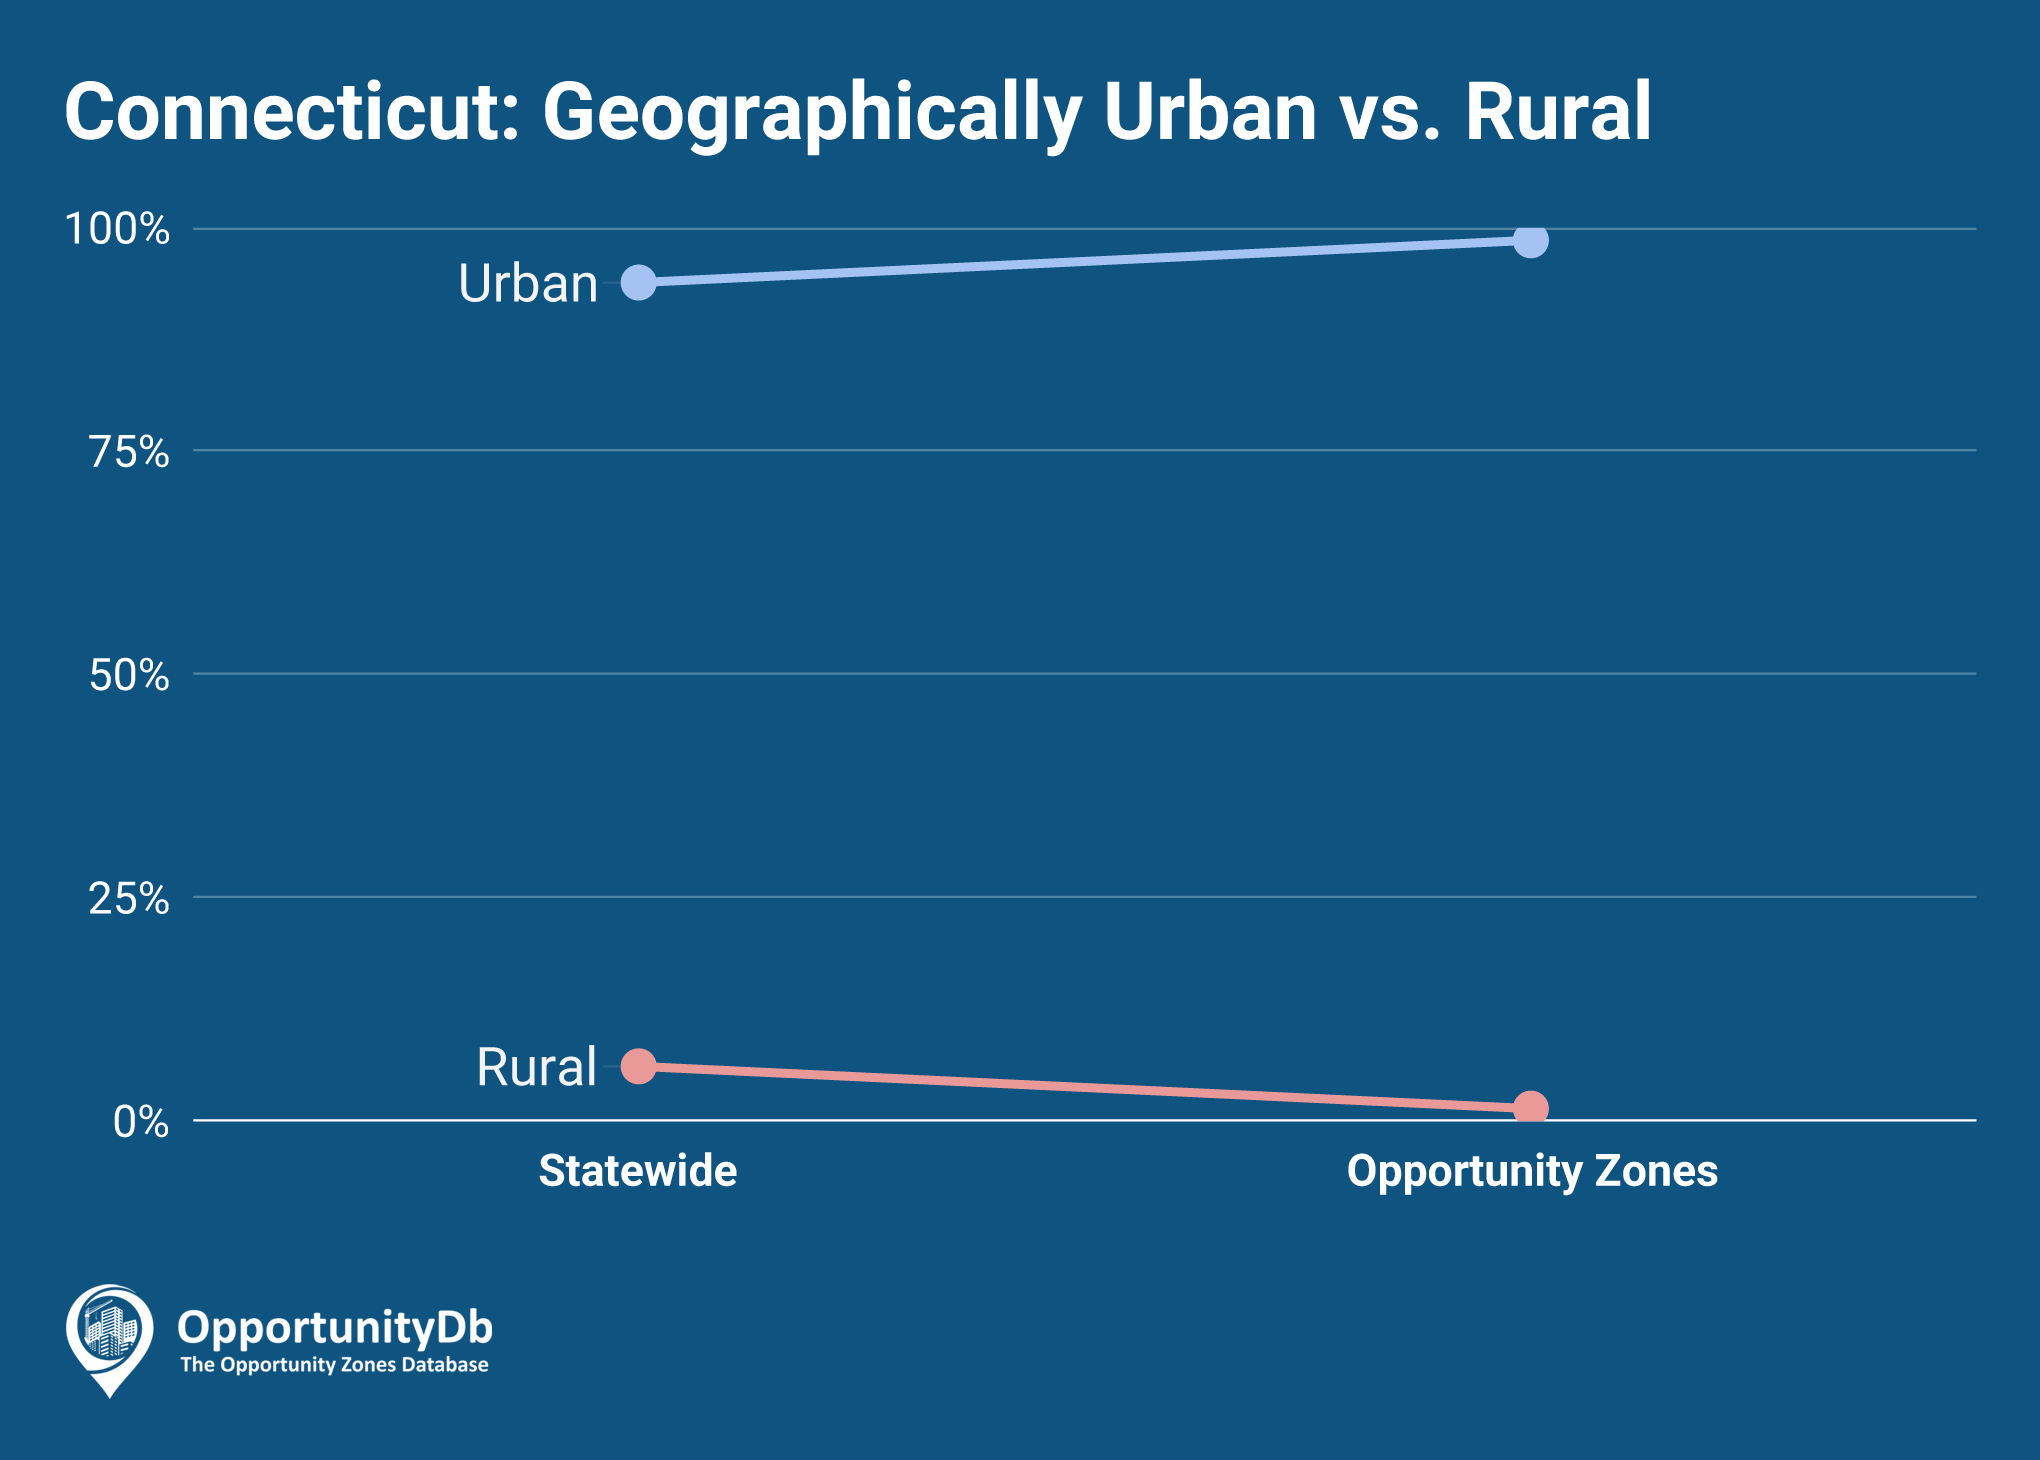 Urban vs. Rural in Connecticut Opportunity Zones